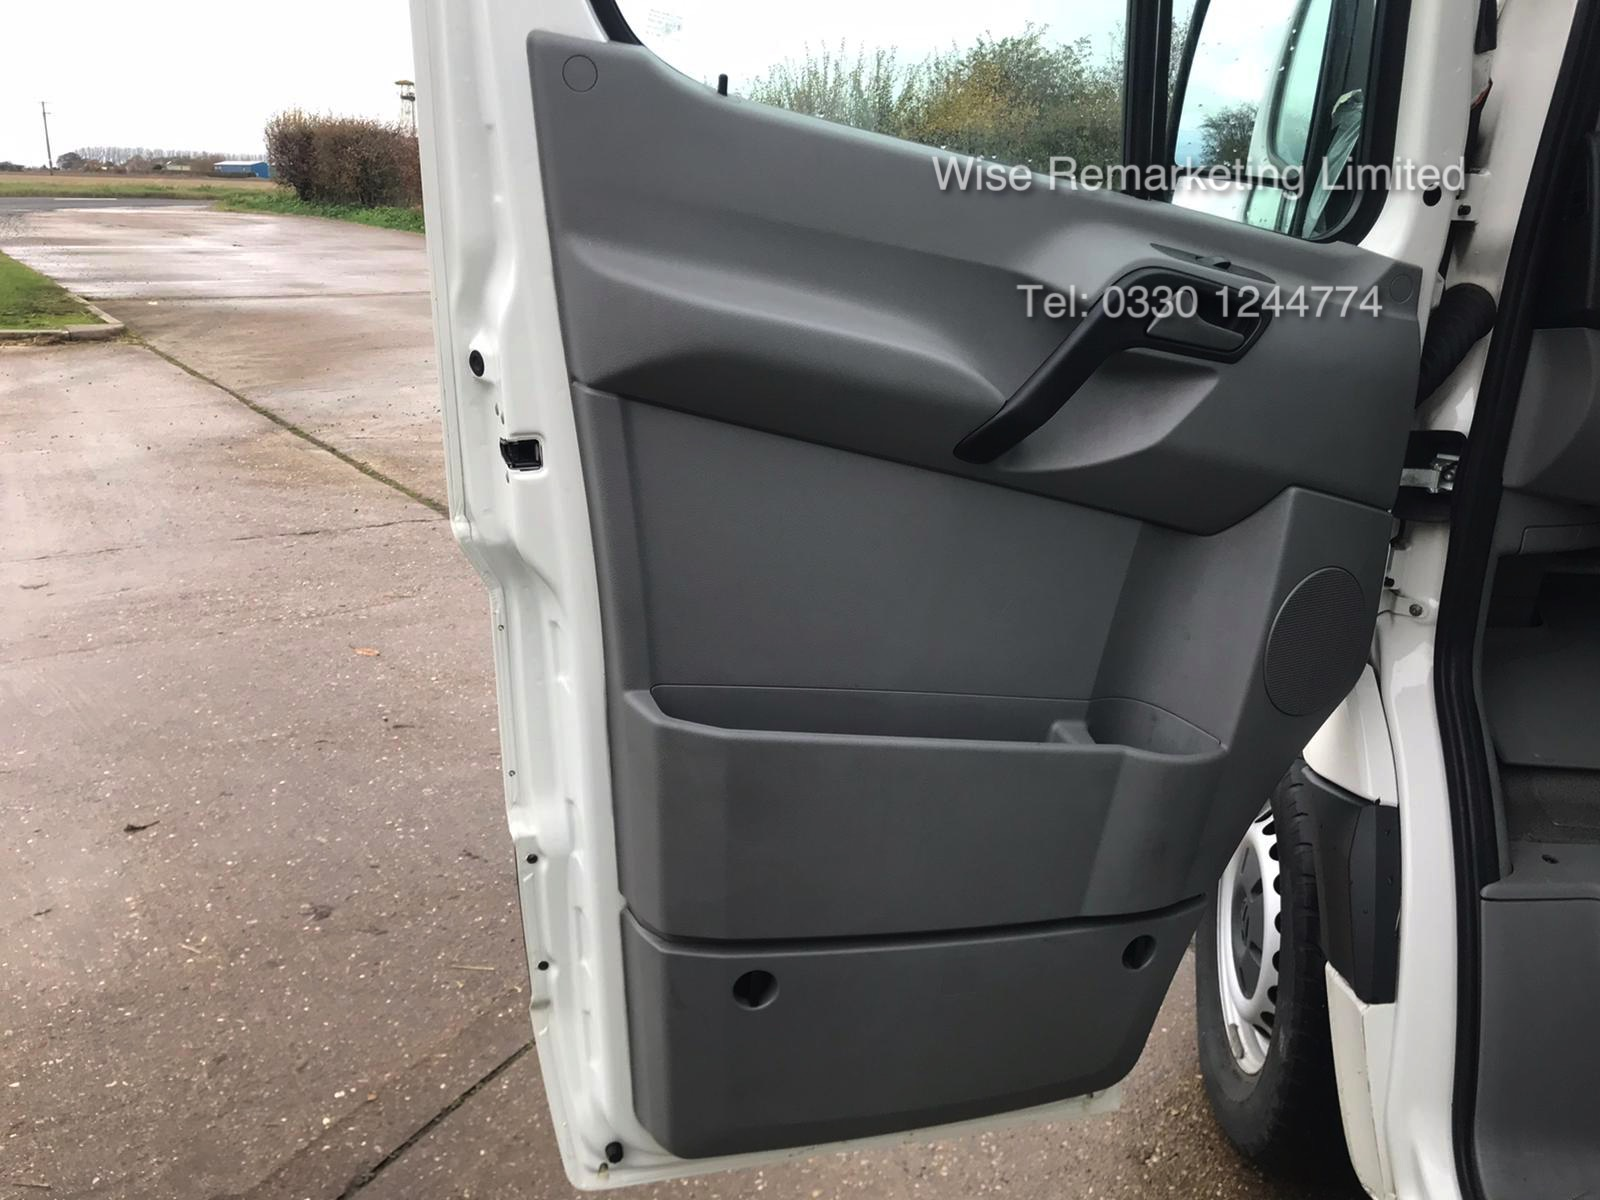 Volkswagen Crafter CR35 Startline 2.0l TDi - LWB - 2016 Model -1 Keeper From New - Service History - Image 8 of 15